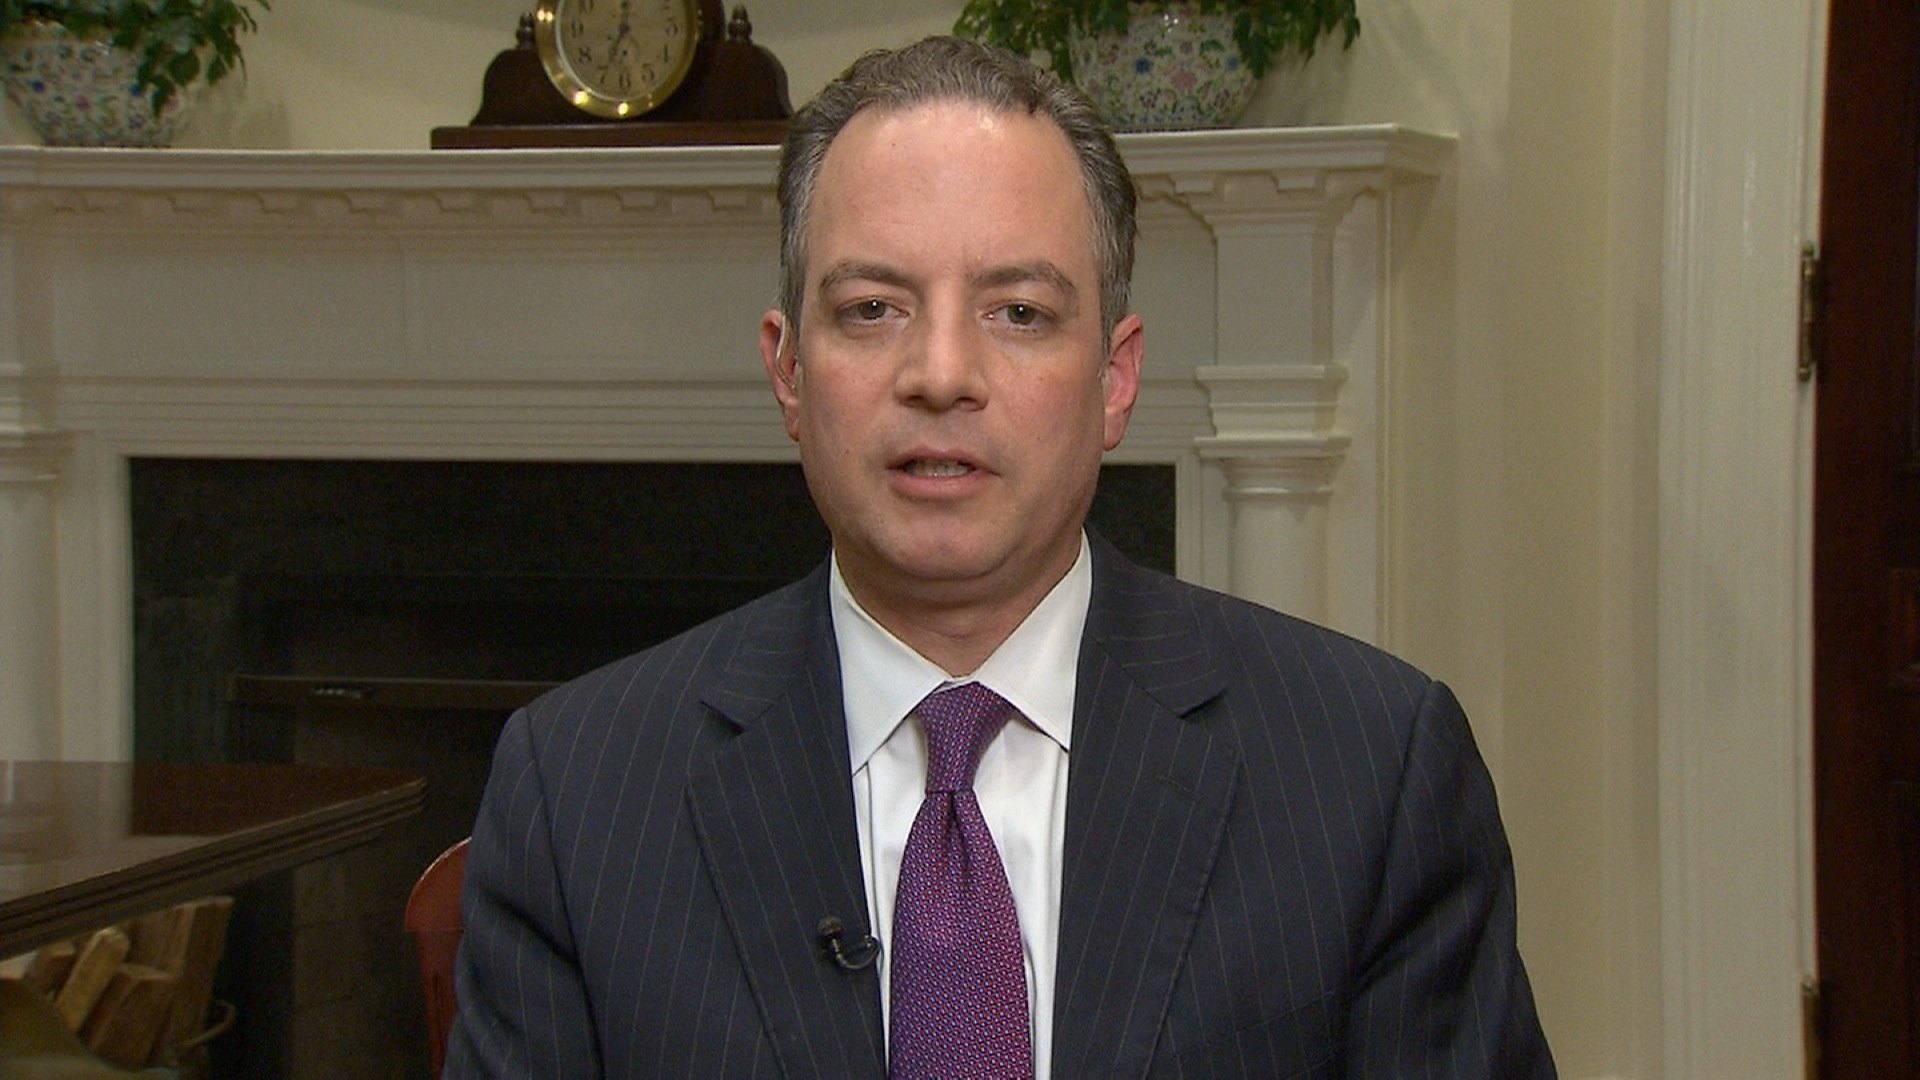 More White House drama as Trump replaces Reince Priebus